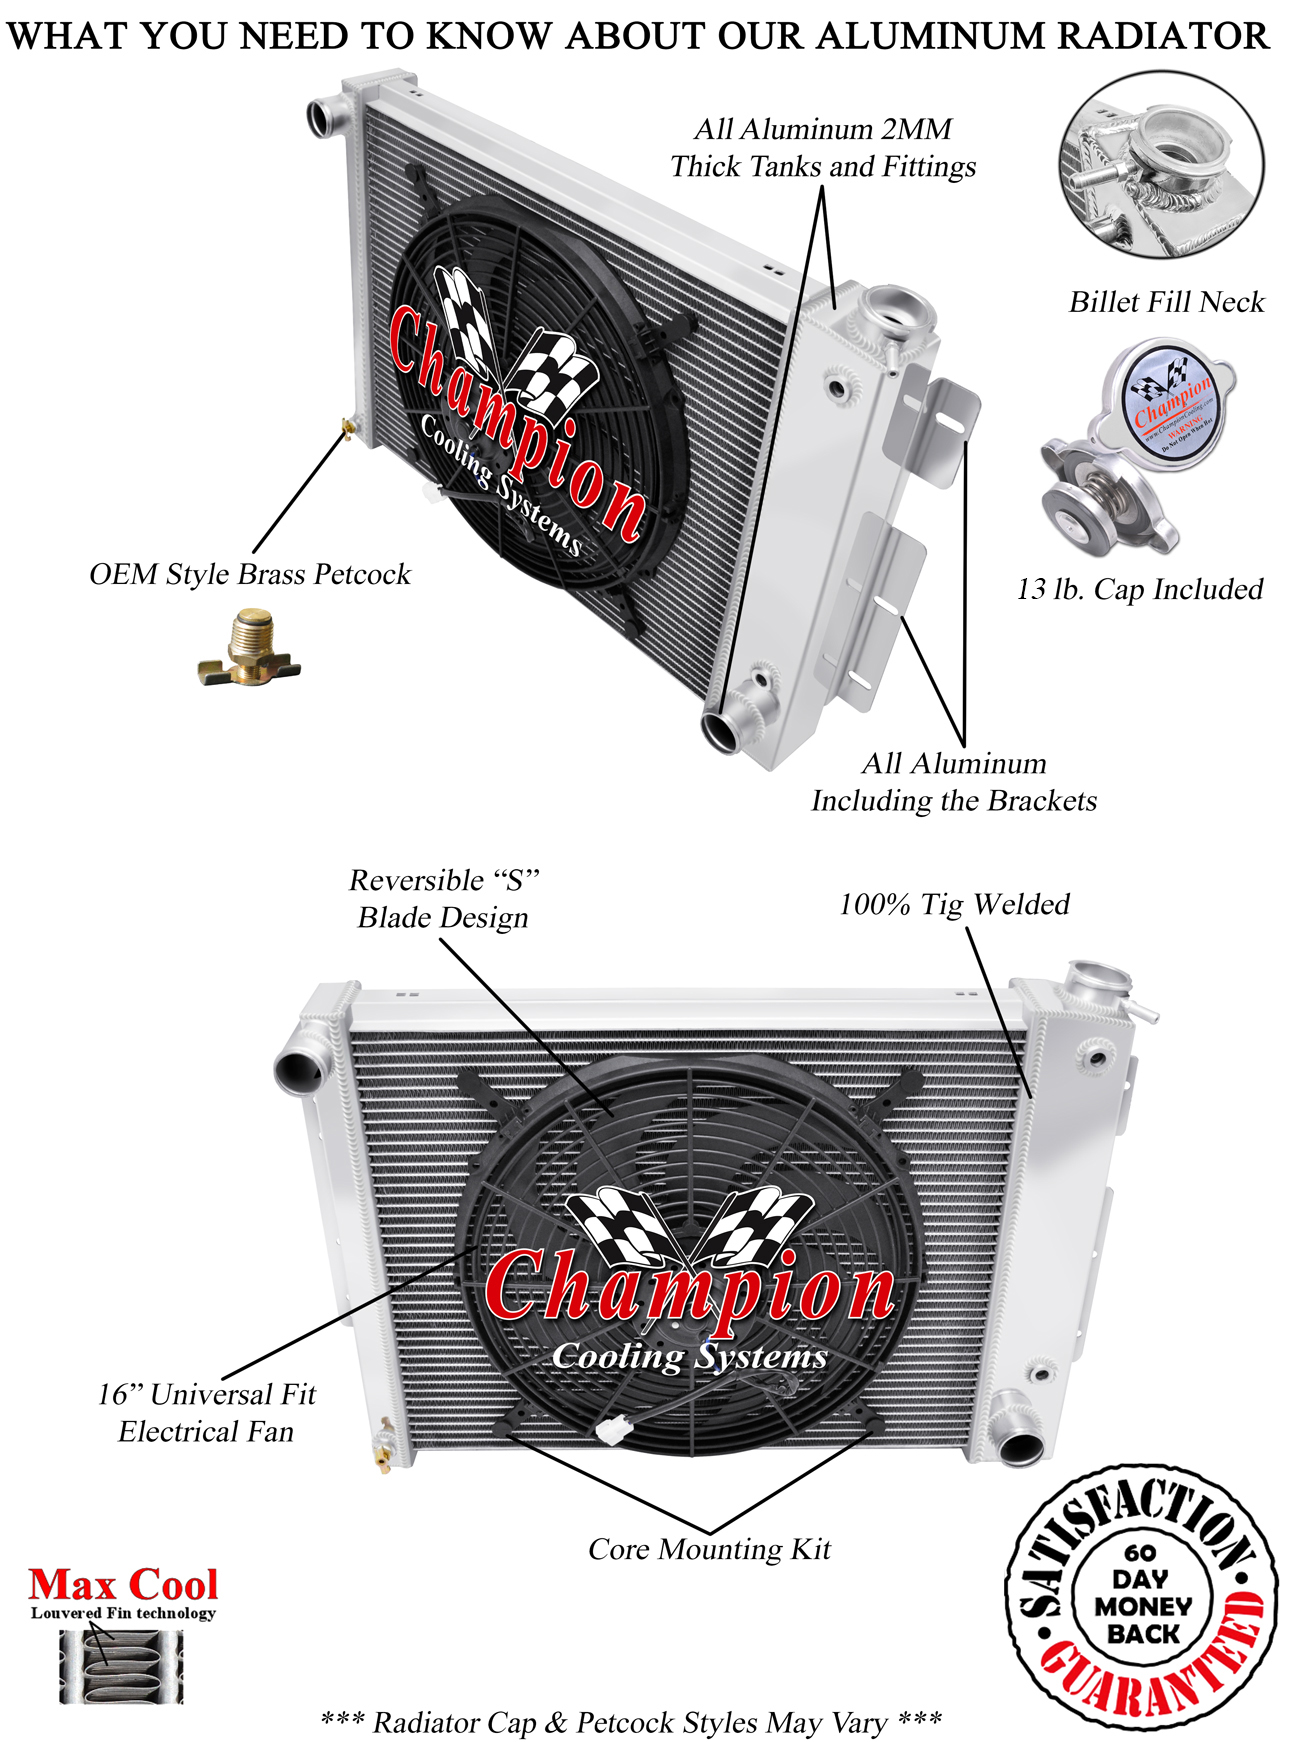 https://www.championcooling.com/photos/Photos%20White/With%20Fans/Combos/337/16/337_1f_d_w.jpg